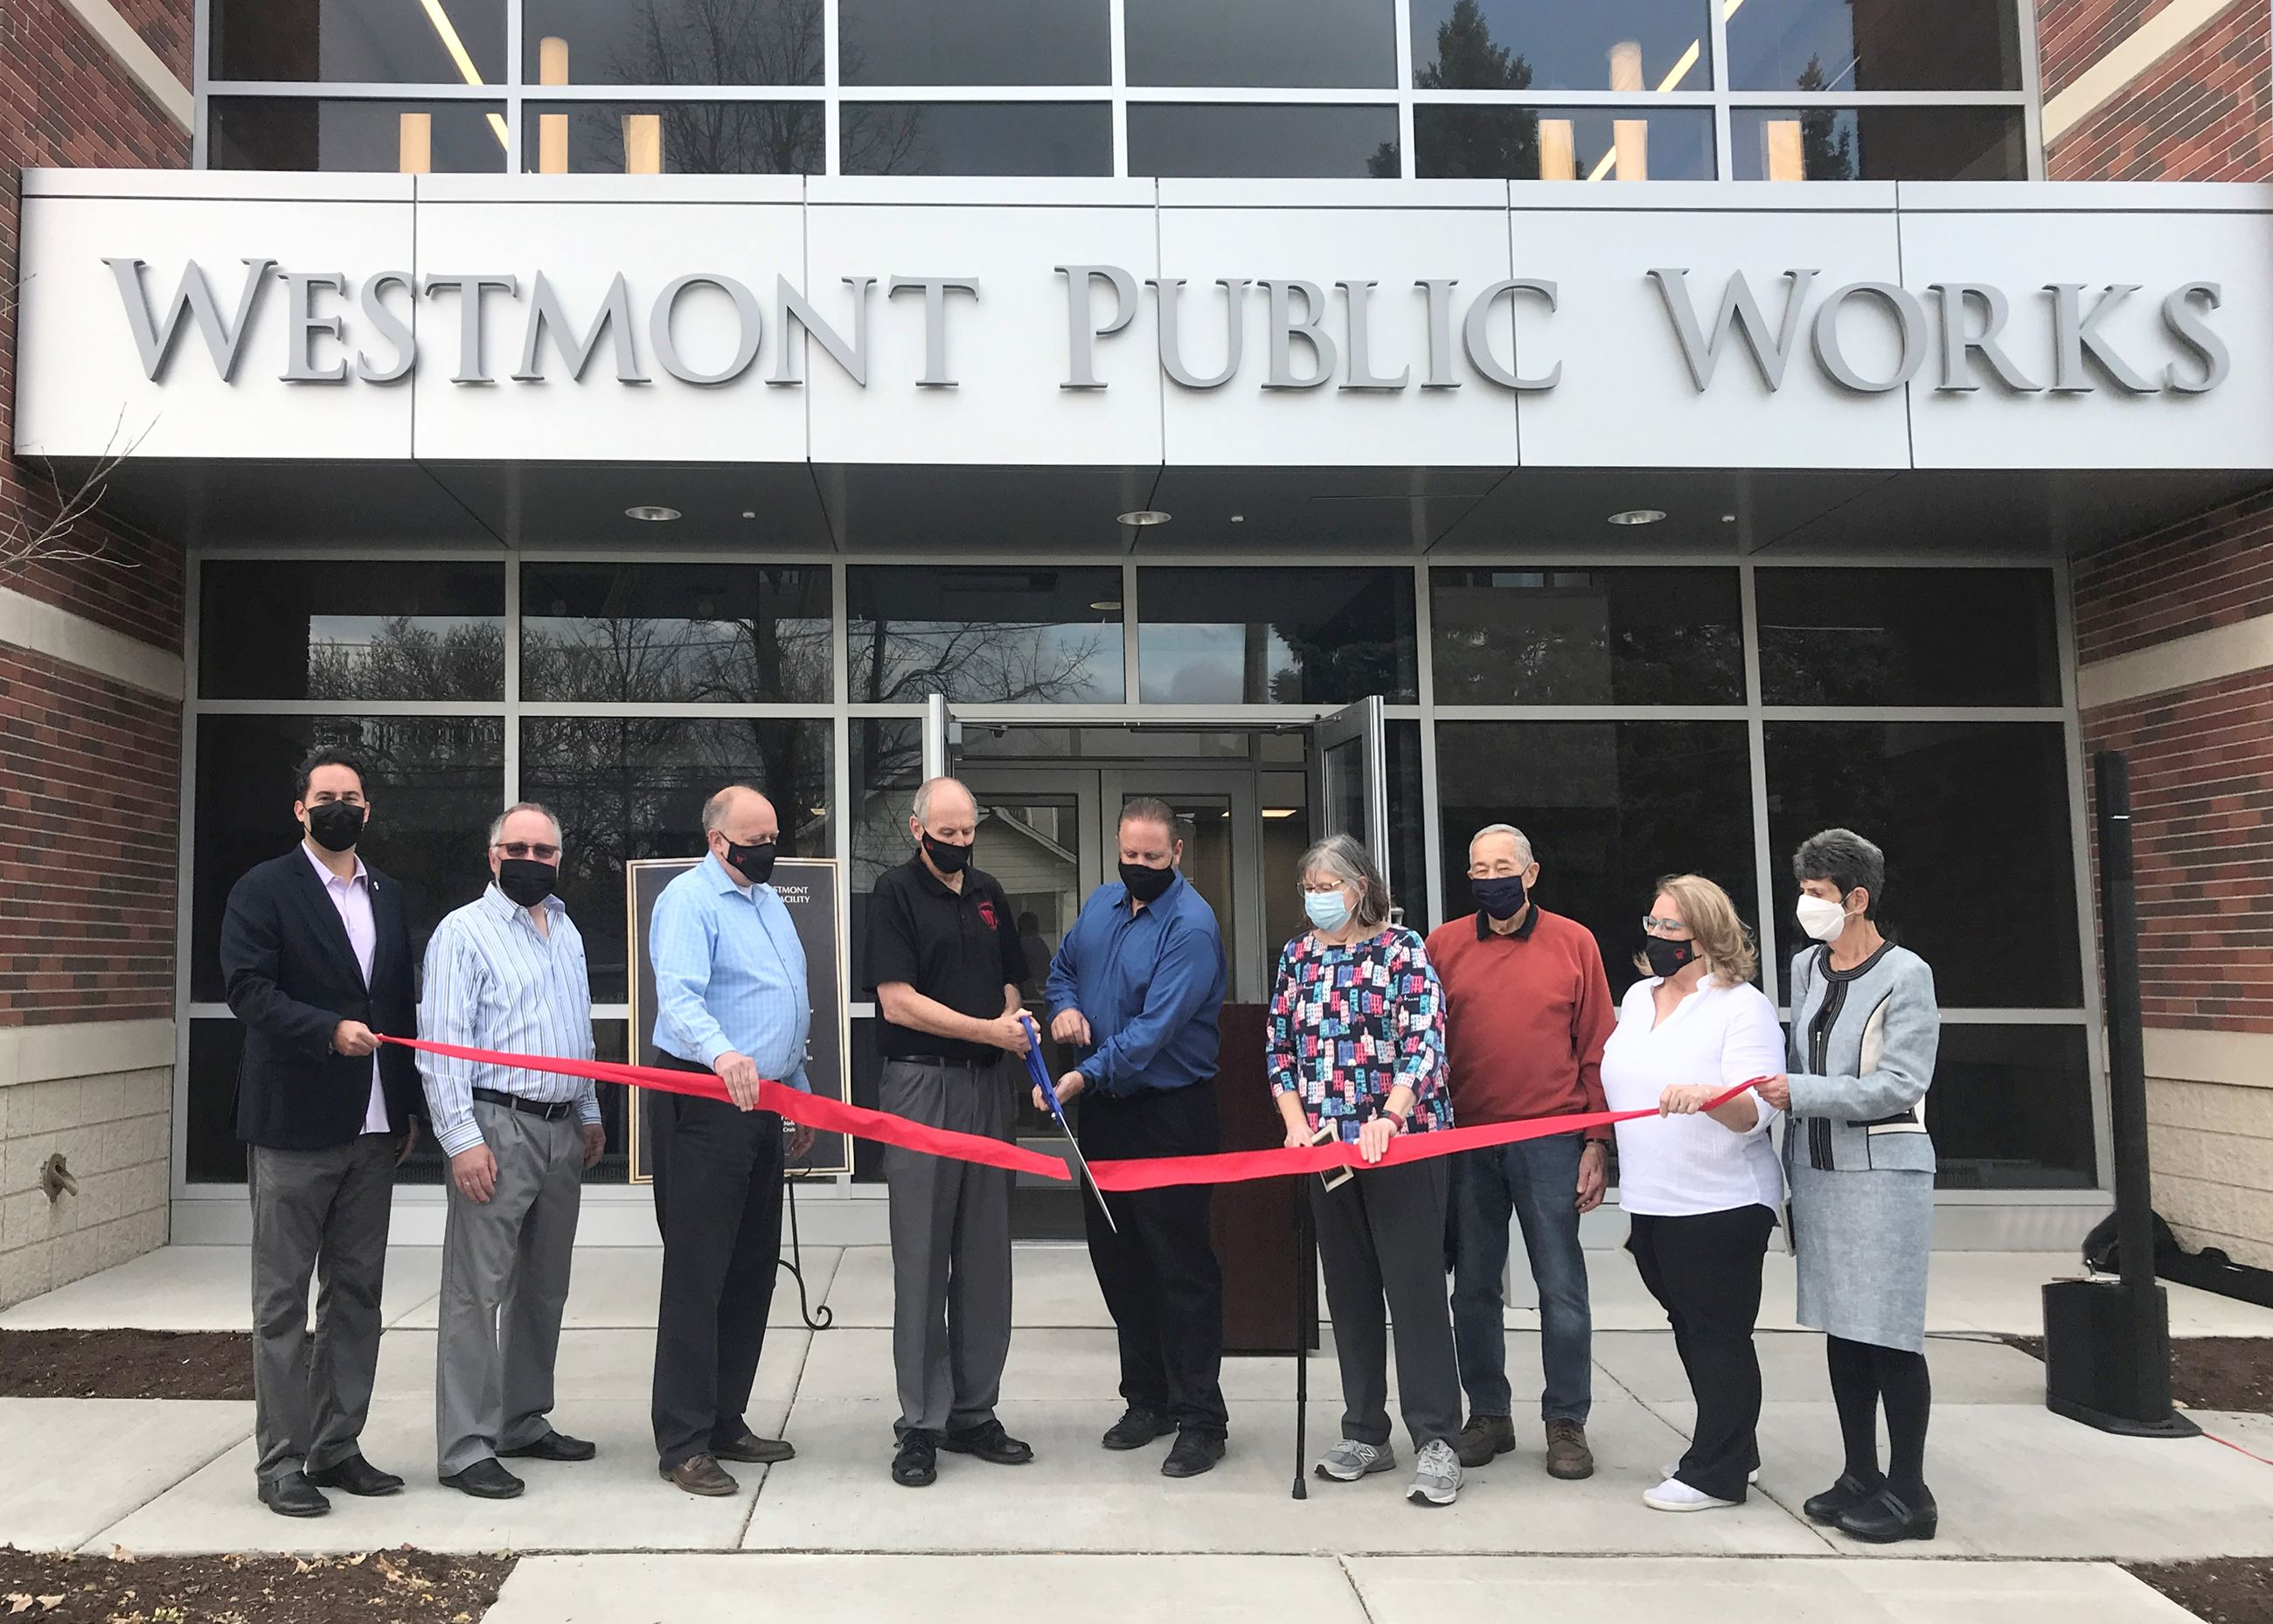 Westmont Public Works Facility Dedication